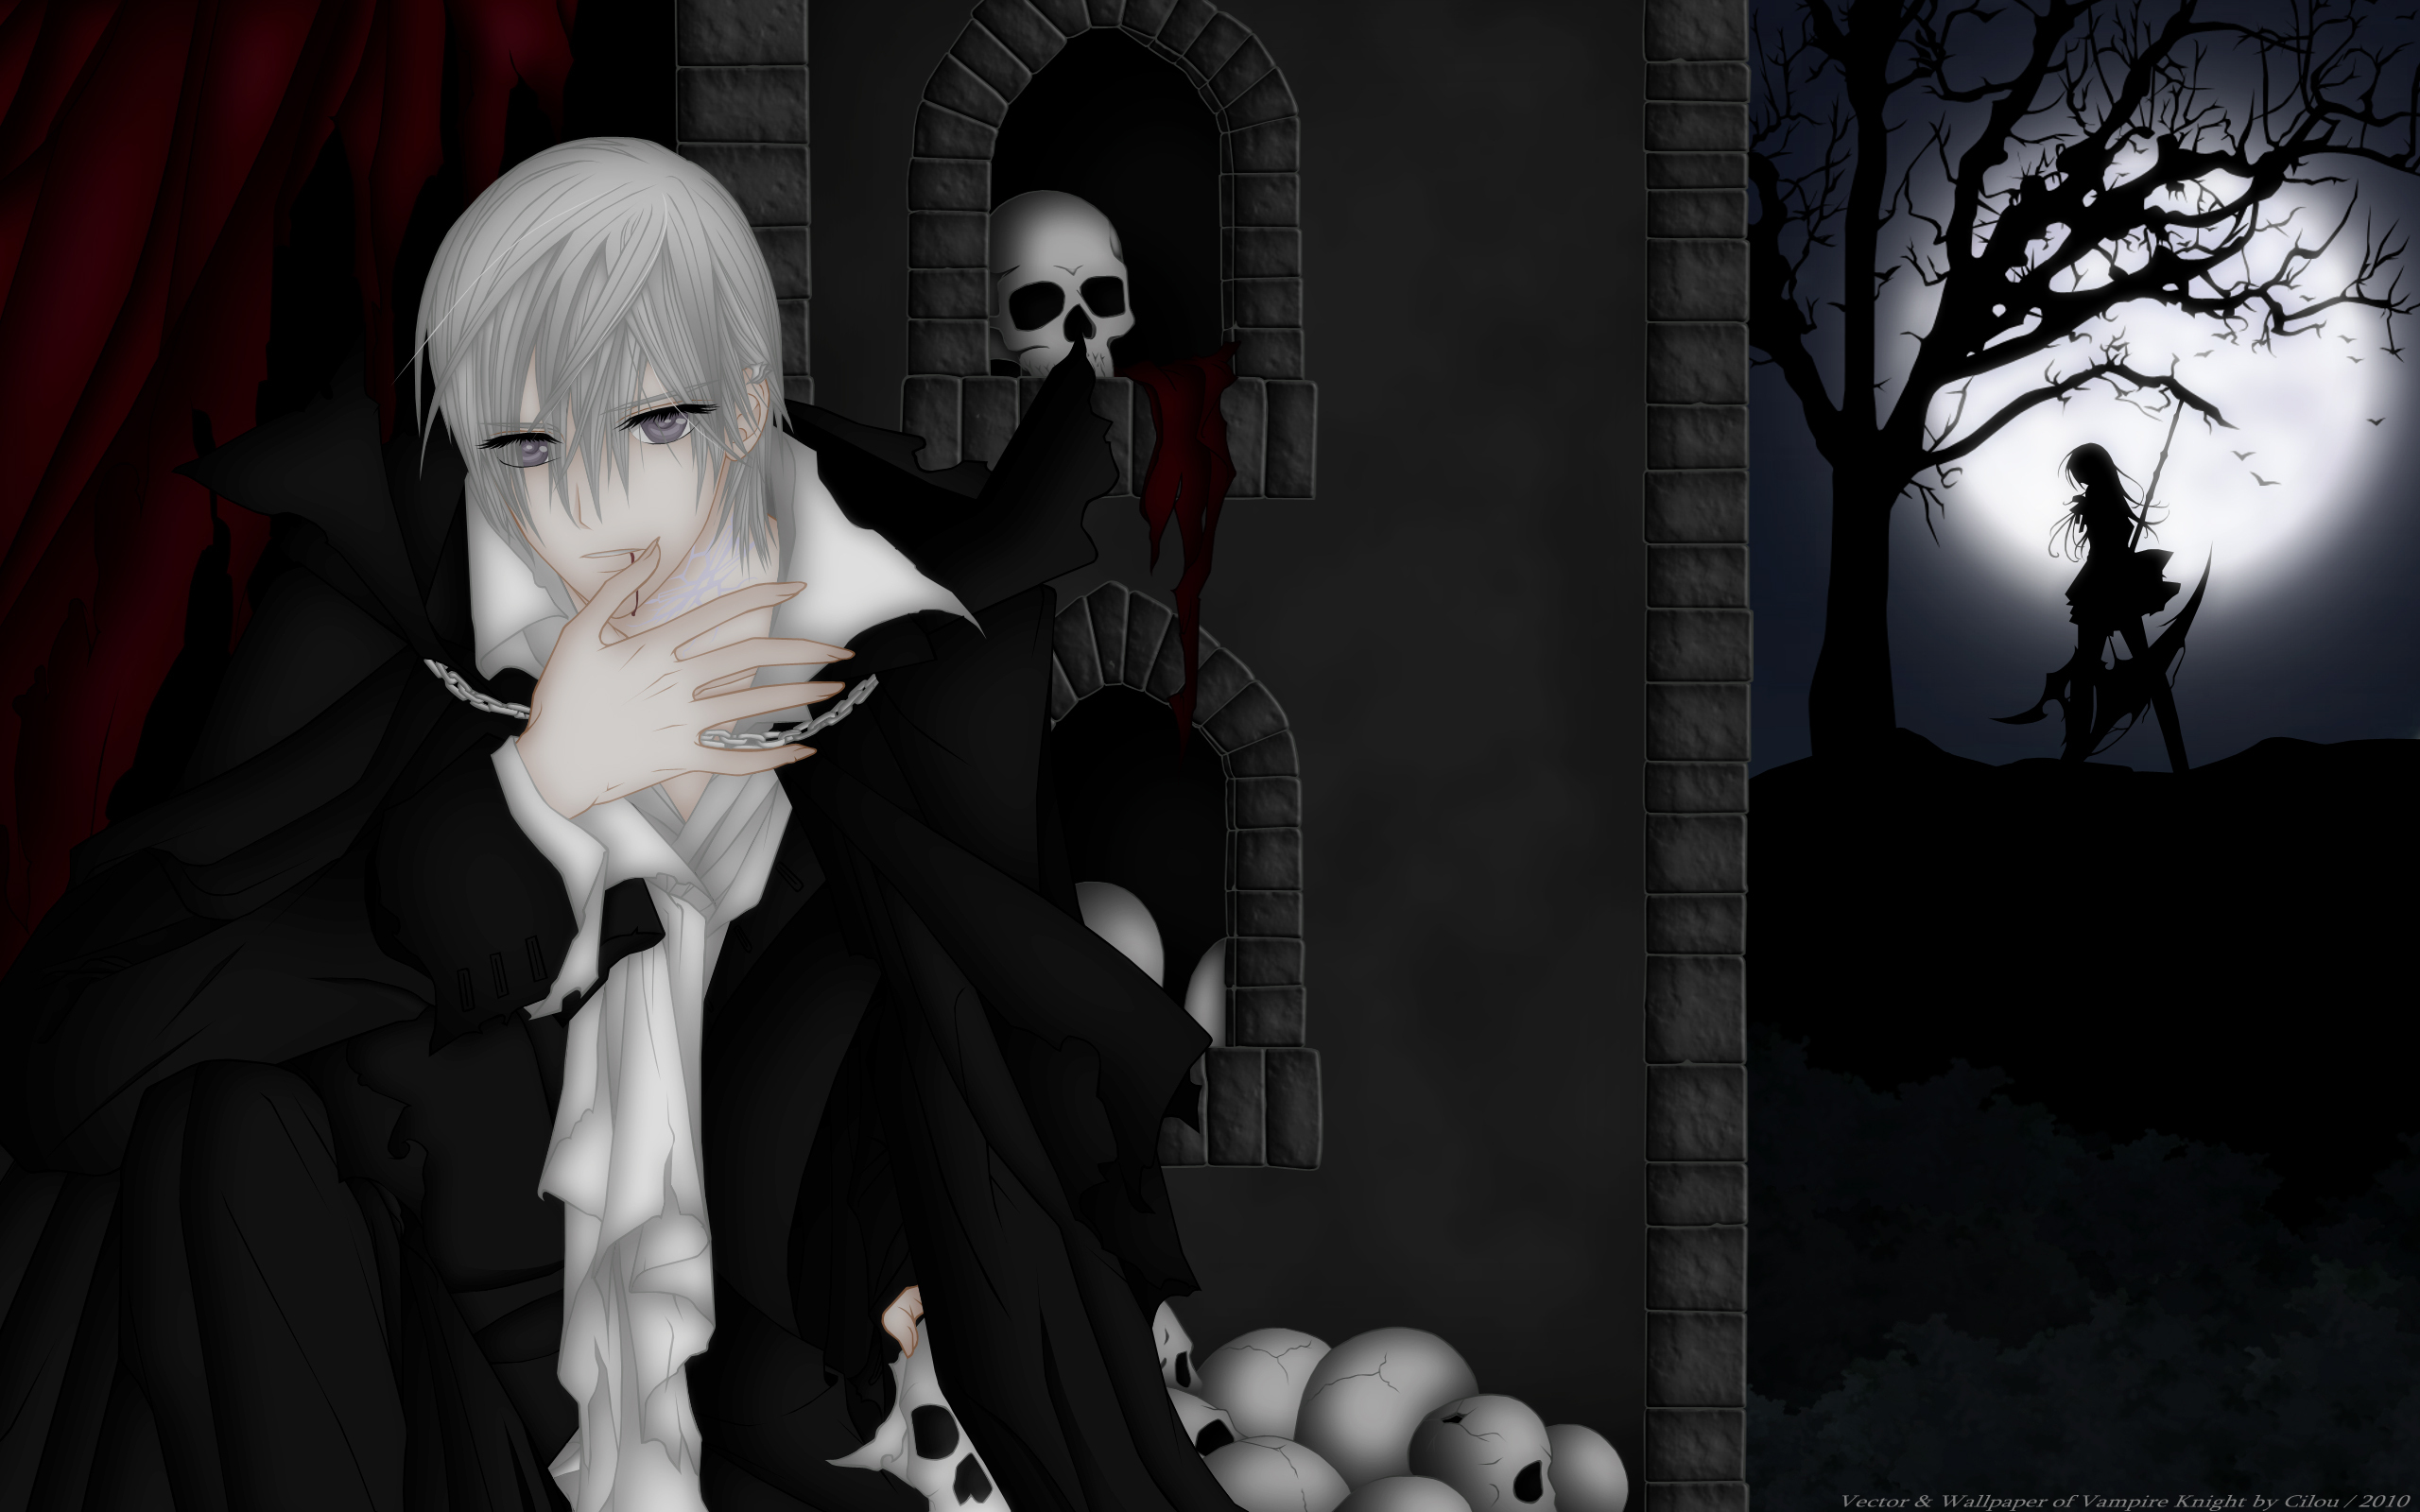 Vampire knight hd wallpaper background image 2560x1600 - Vampire knight anime wallpaper ...